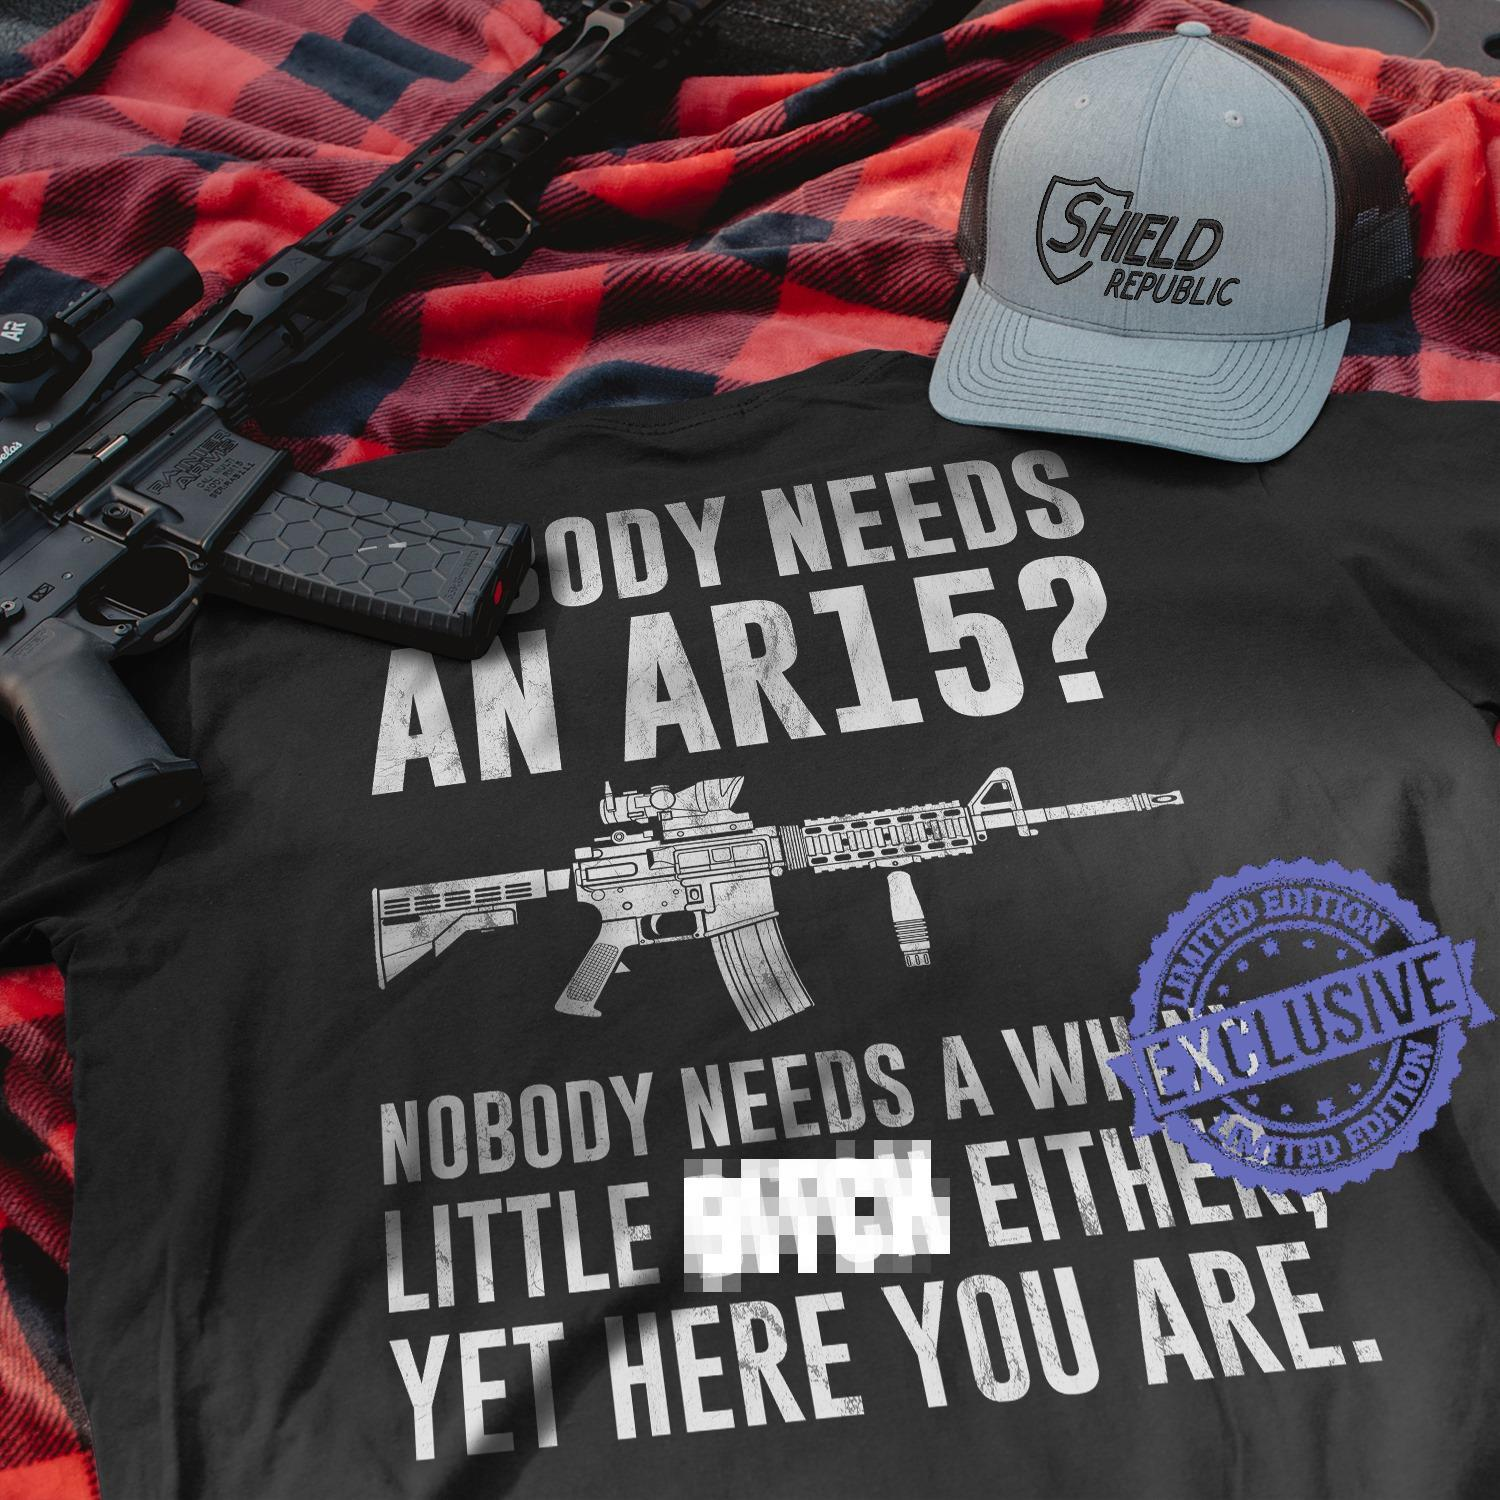 Nobody needs an ar15 nobody needs a whiny little either yet here you are shirt